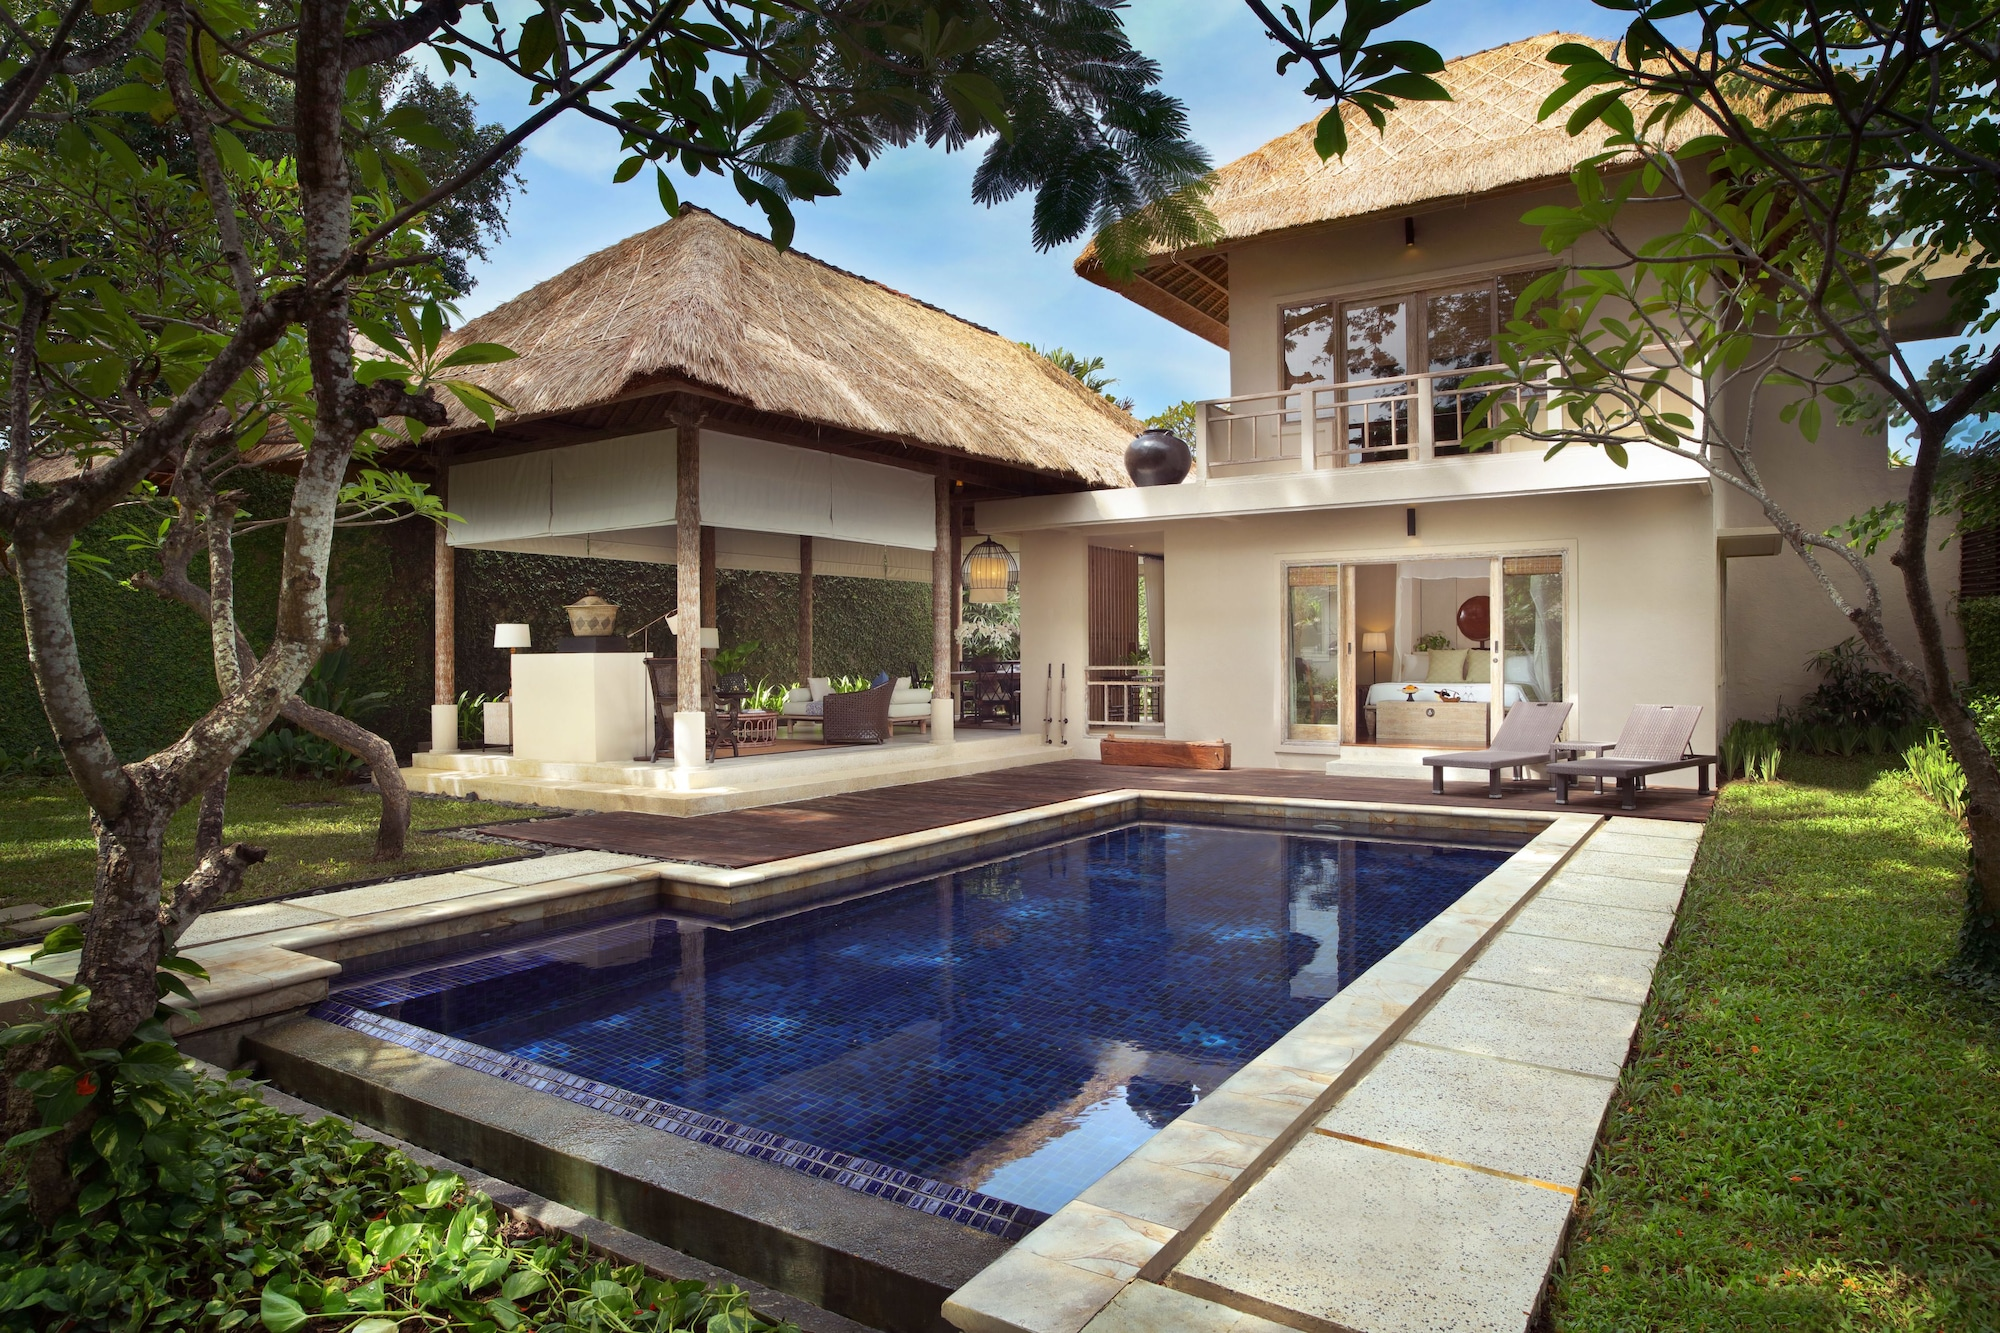 Kayumanis Sanur Private Villa and Spa, Denpasar